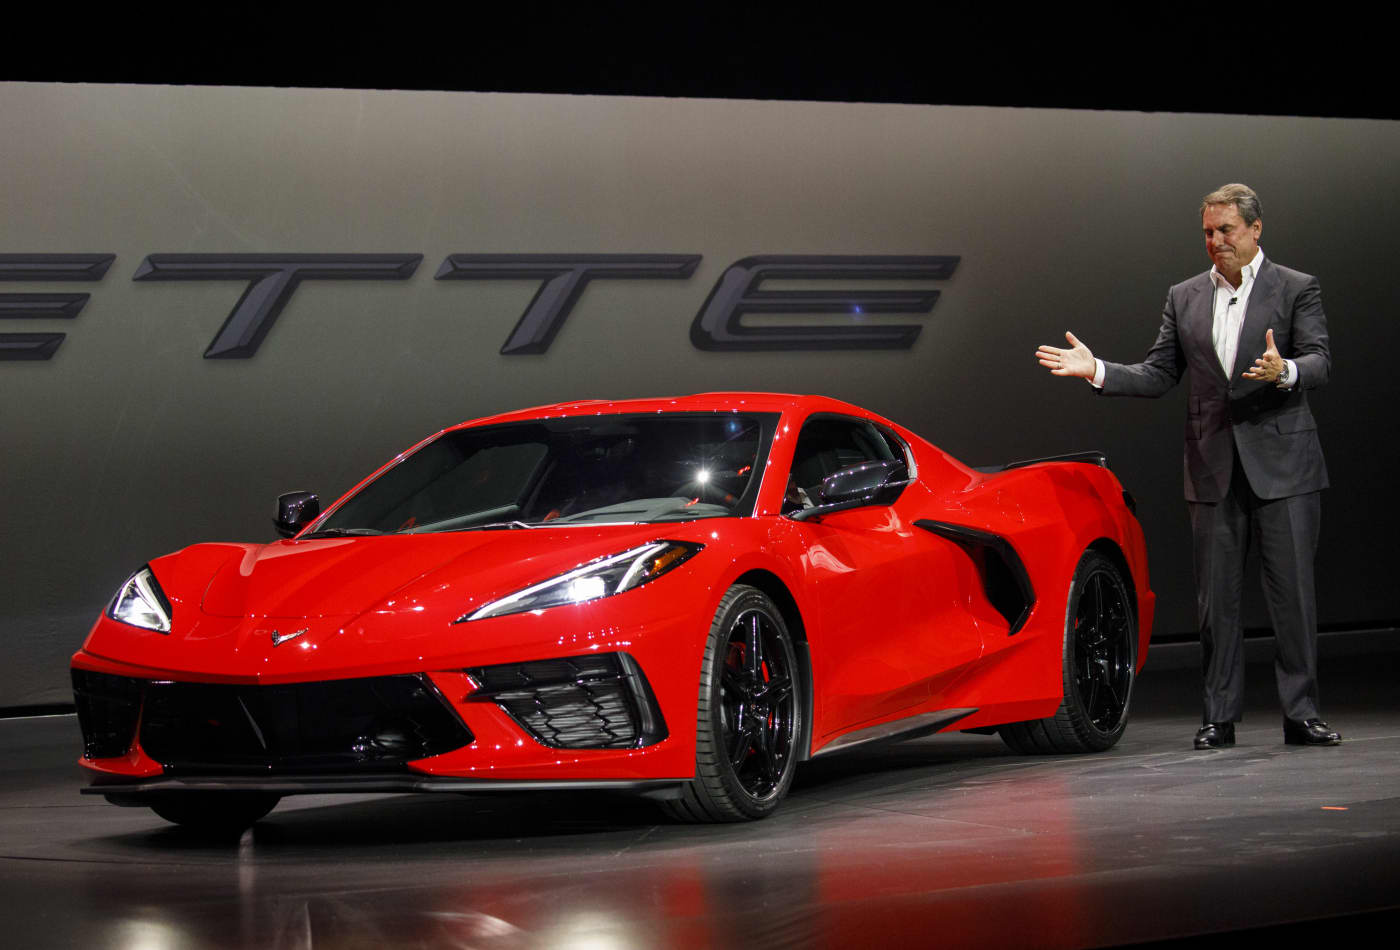 Chevy reveals new 2020 Corvette Stingray as it guns for Ferrari with first mid-engine design